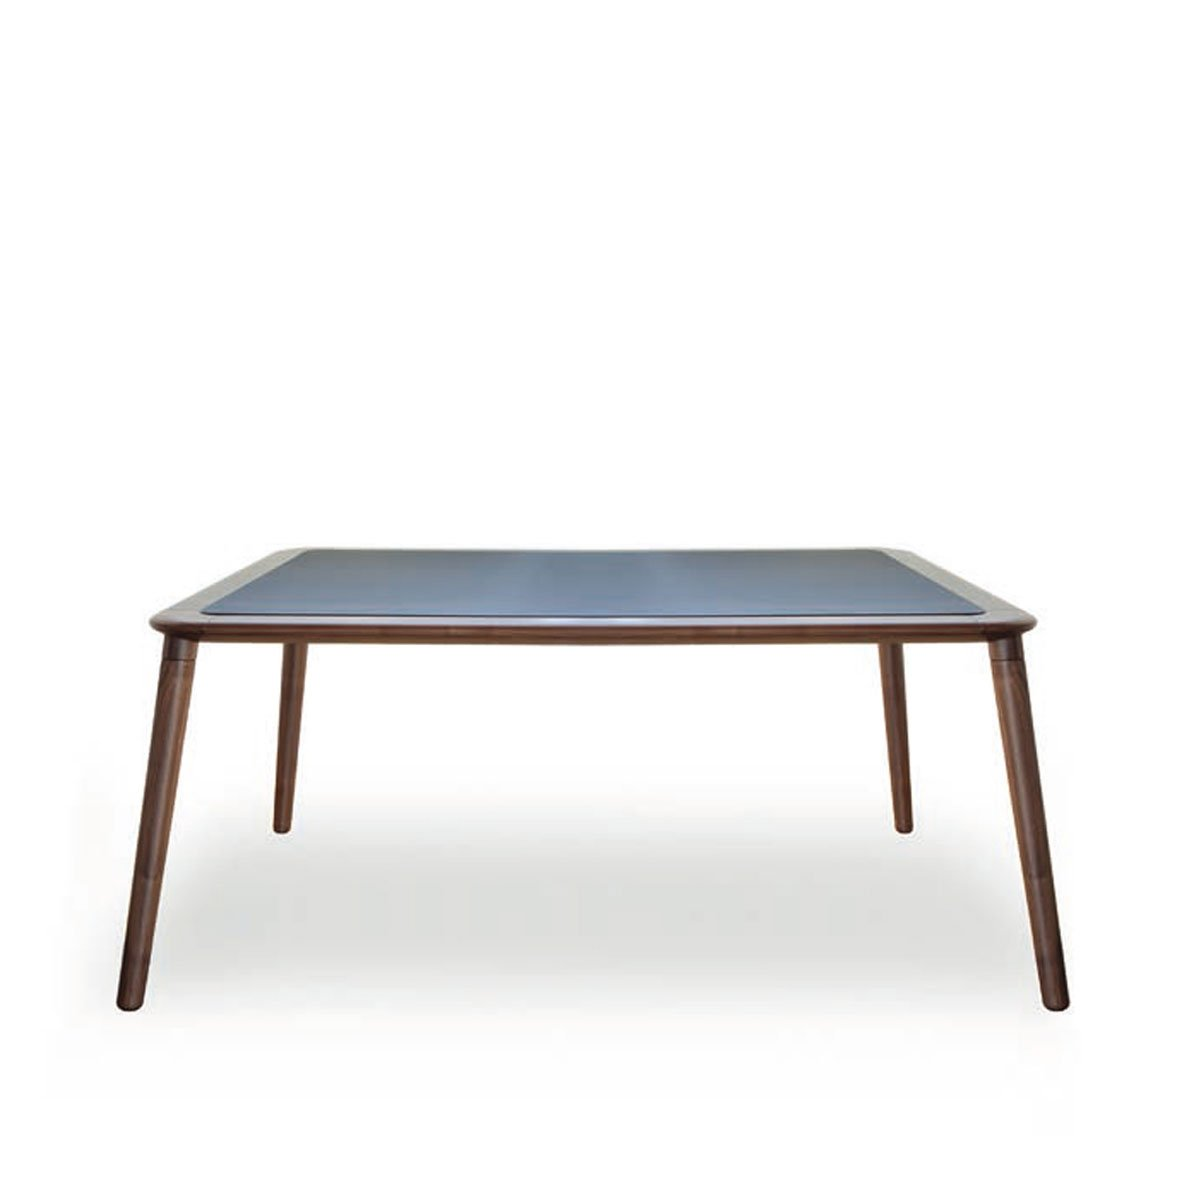 Jonathan Wooden Dining Table With Glass Top Klarity Glass Furniture